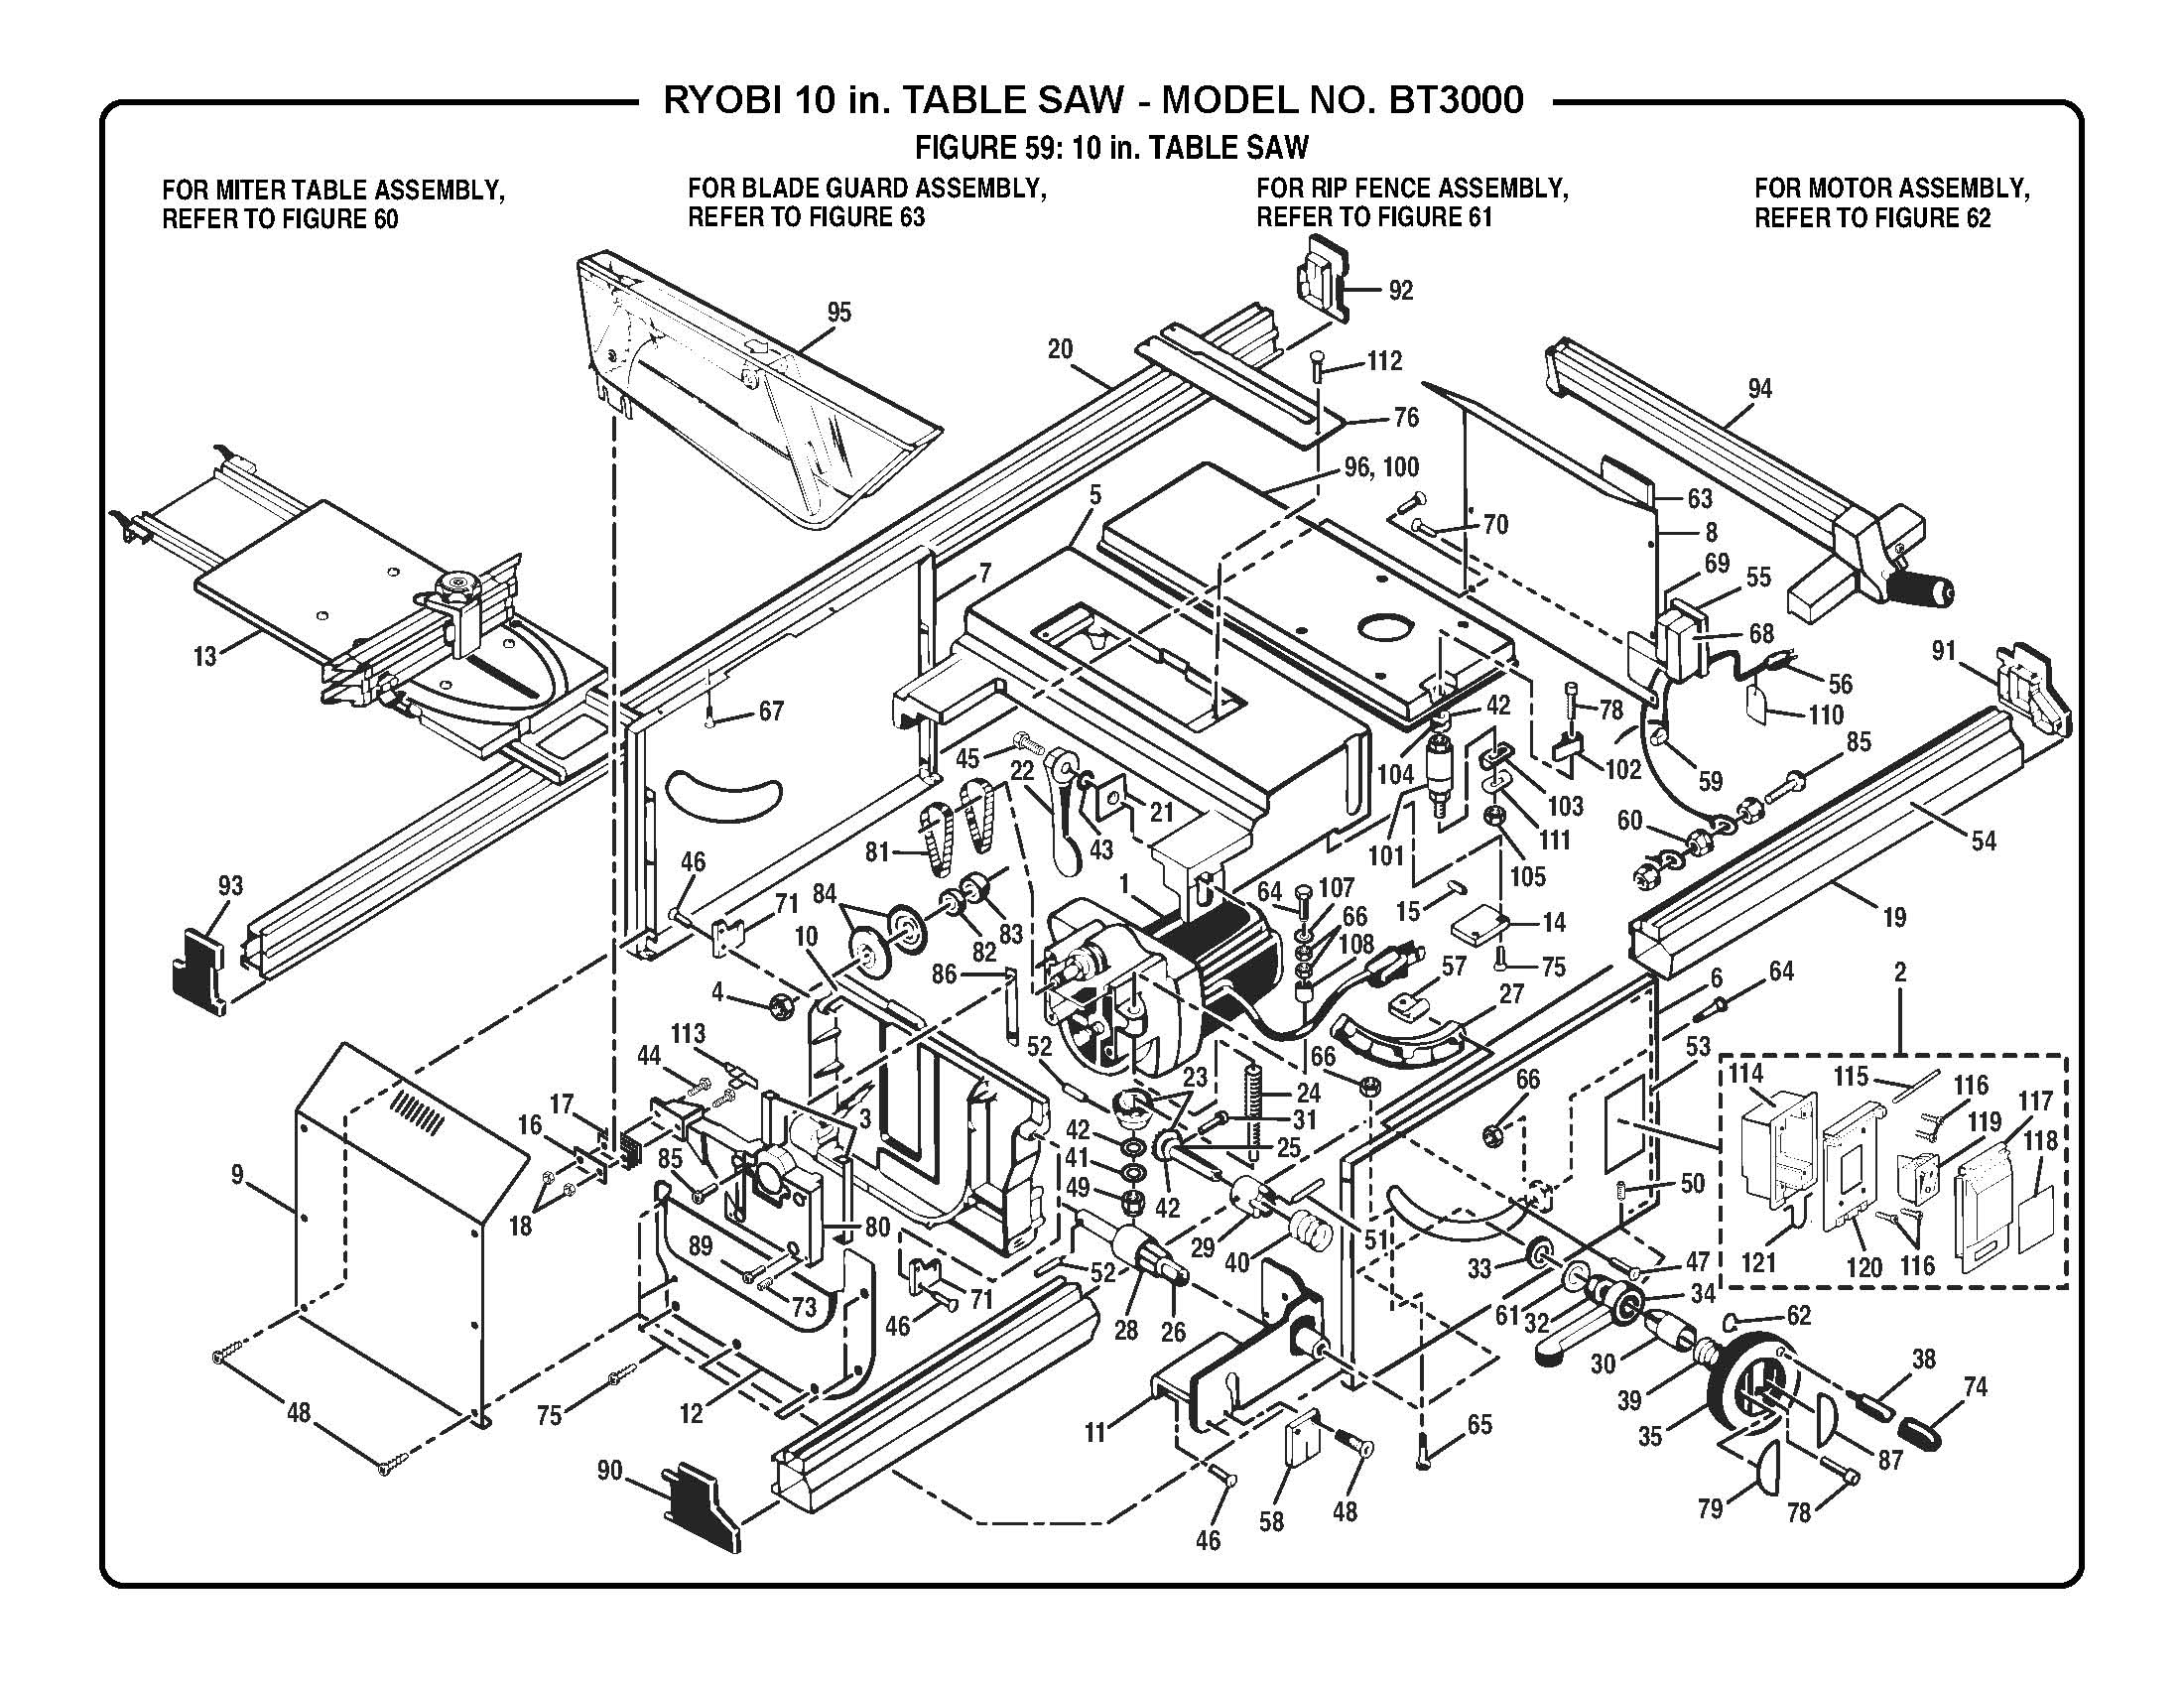 ryobi bt3000 table saw manual wiring diagrams